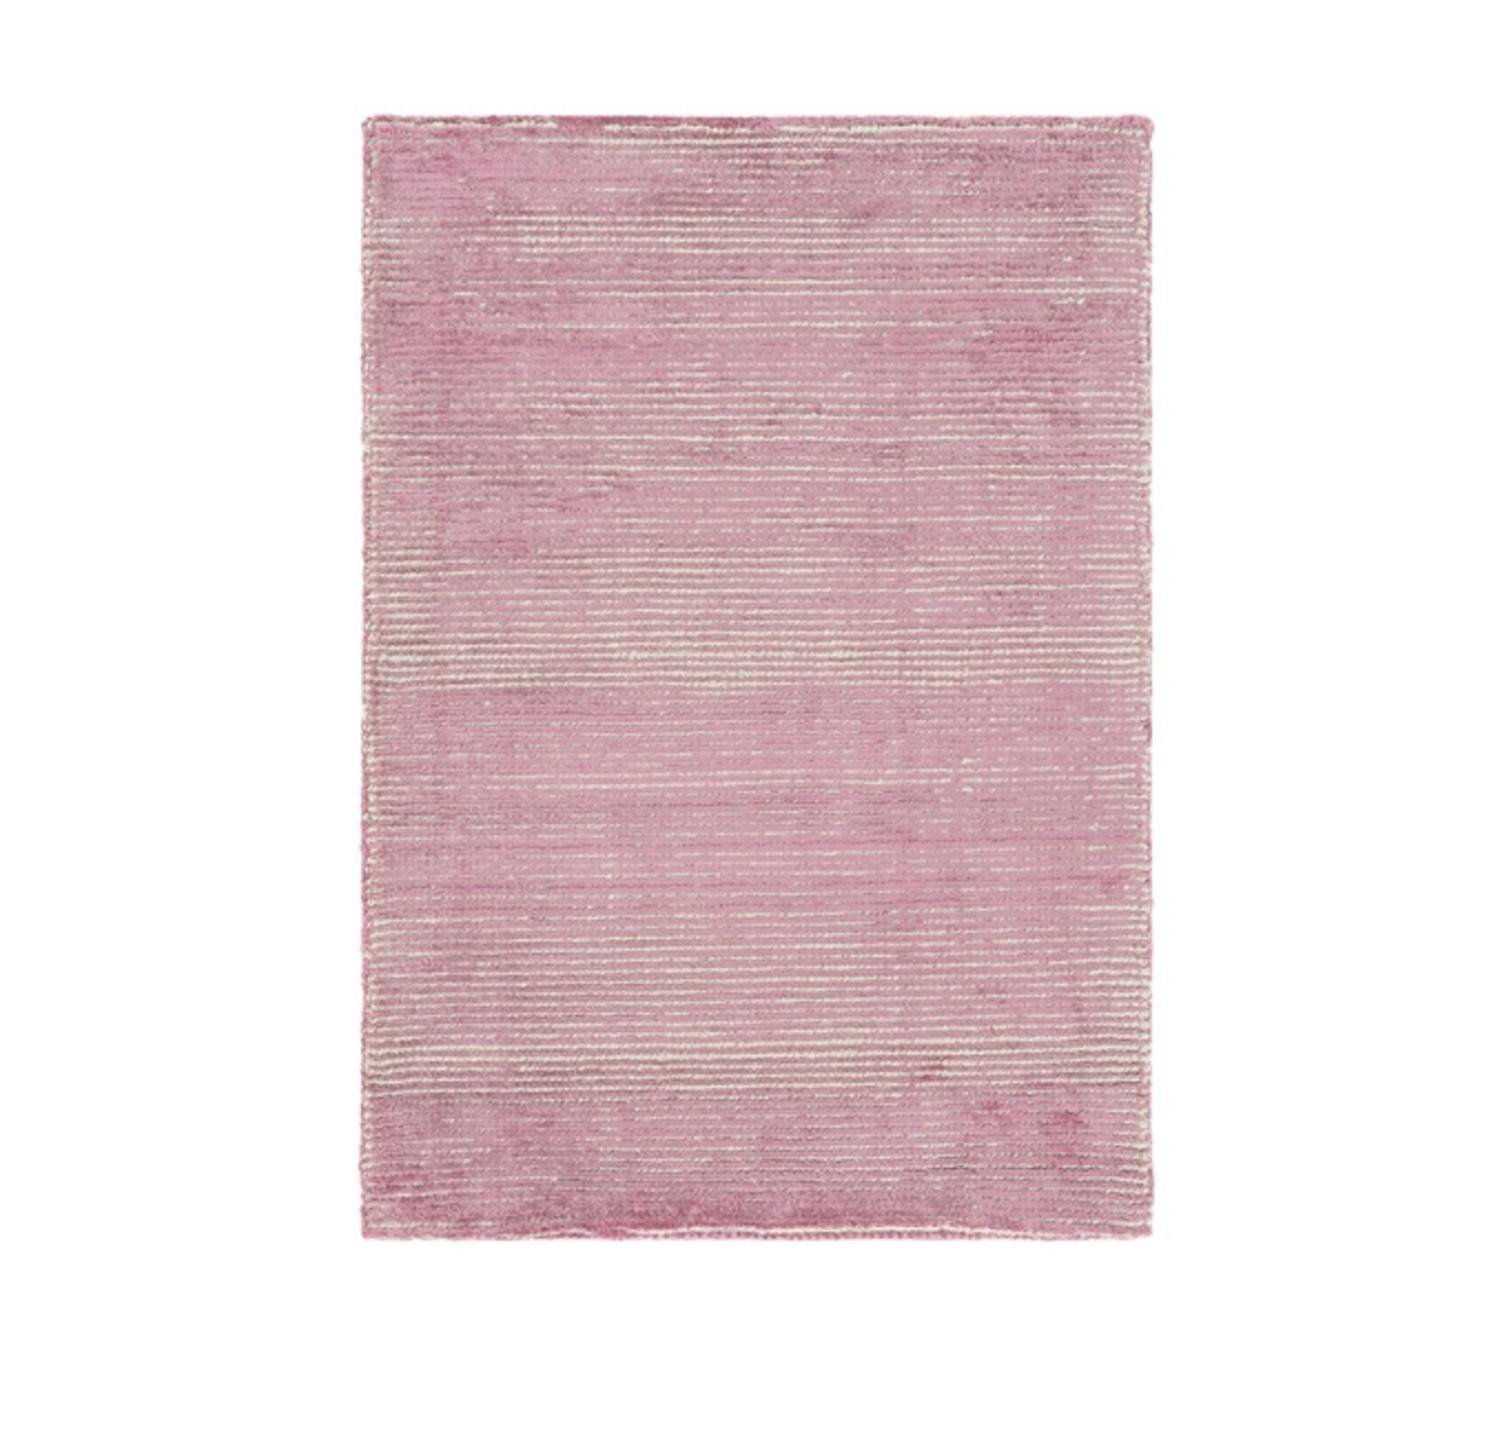 5' x 7.5'  Faded Comfort Dusty Rose and Lion Brown Hand L...